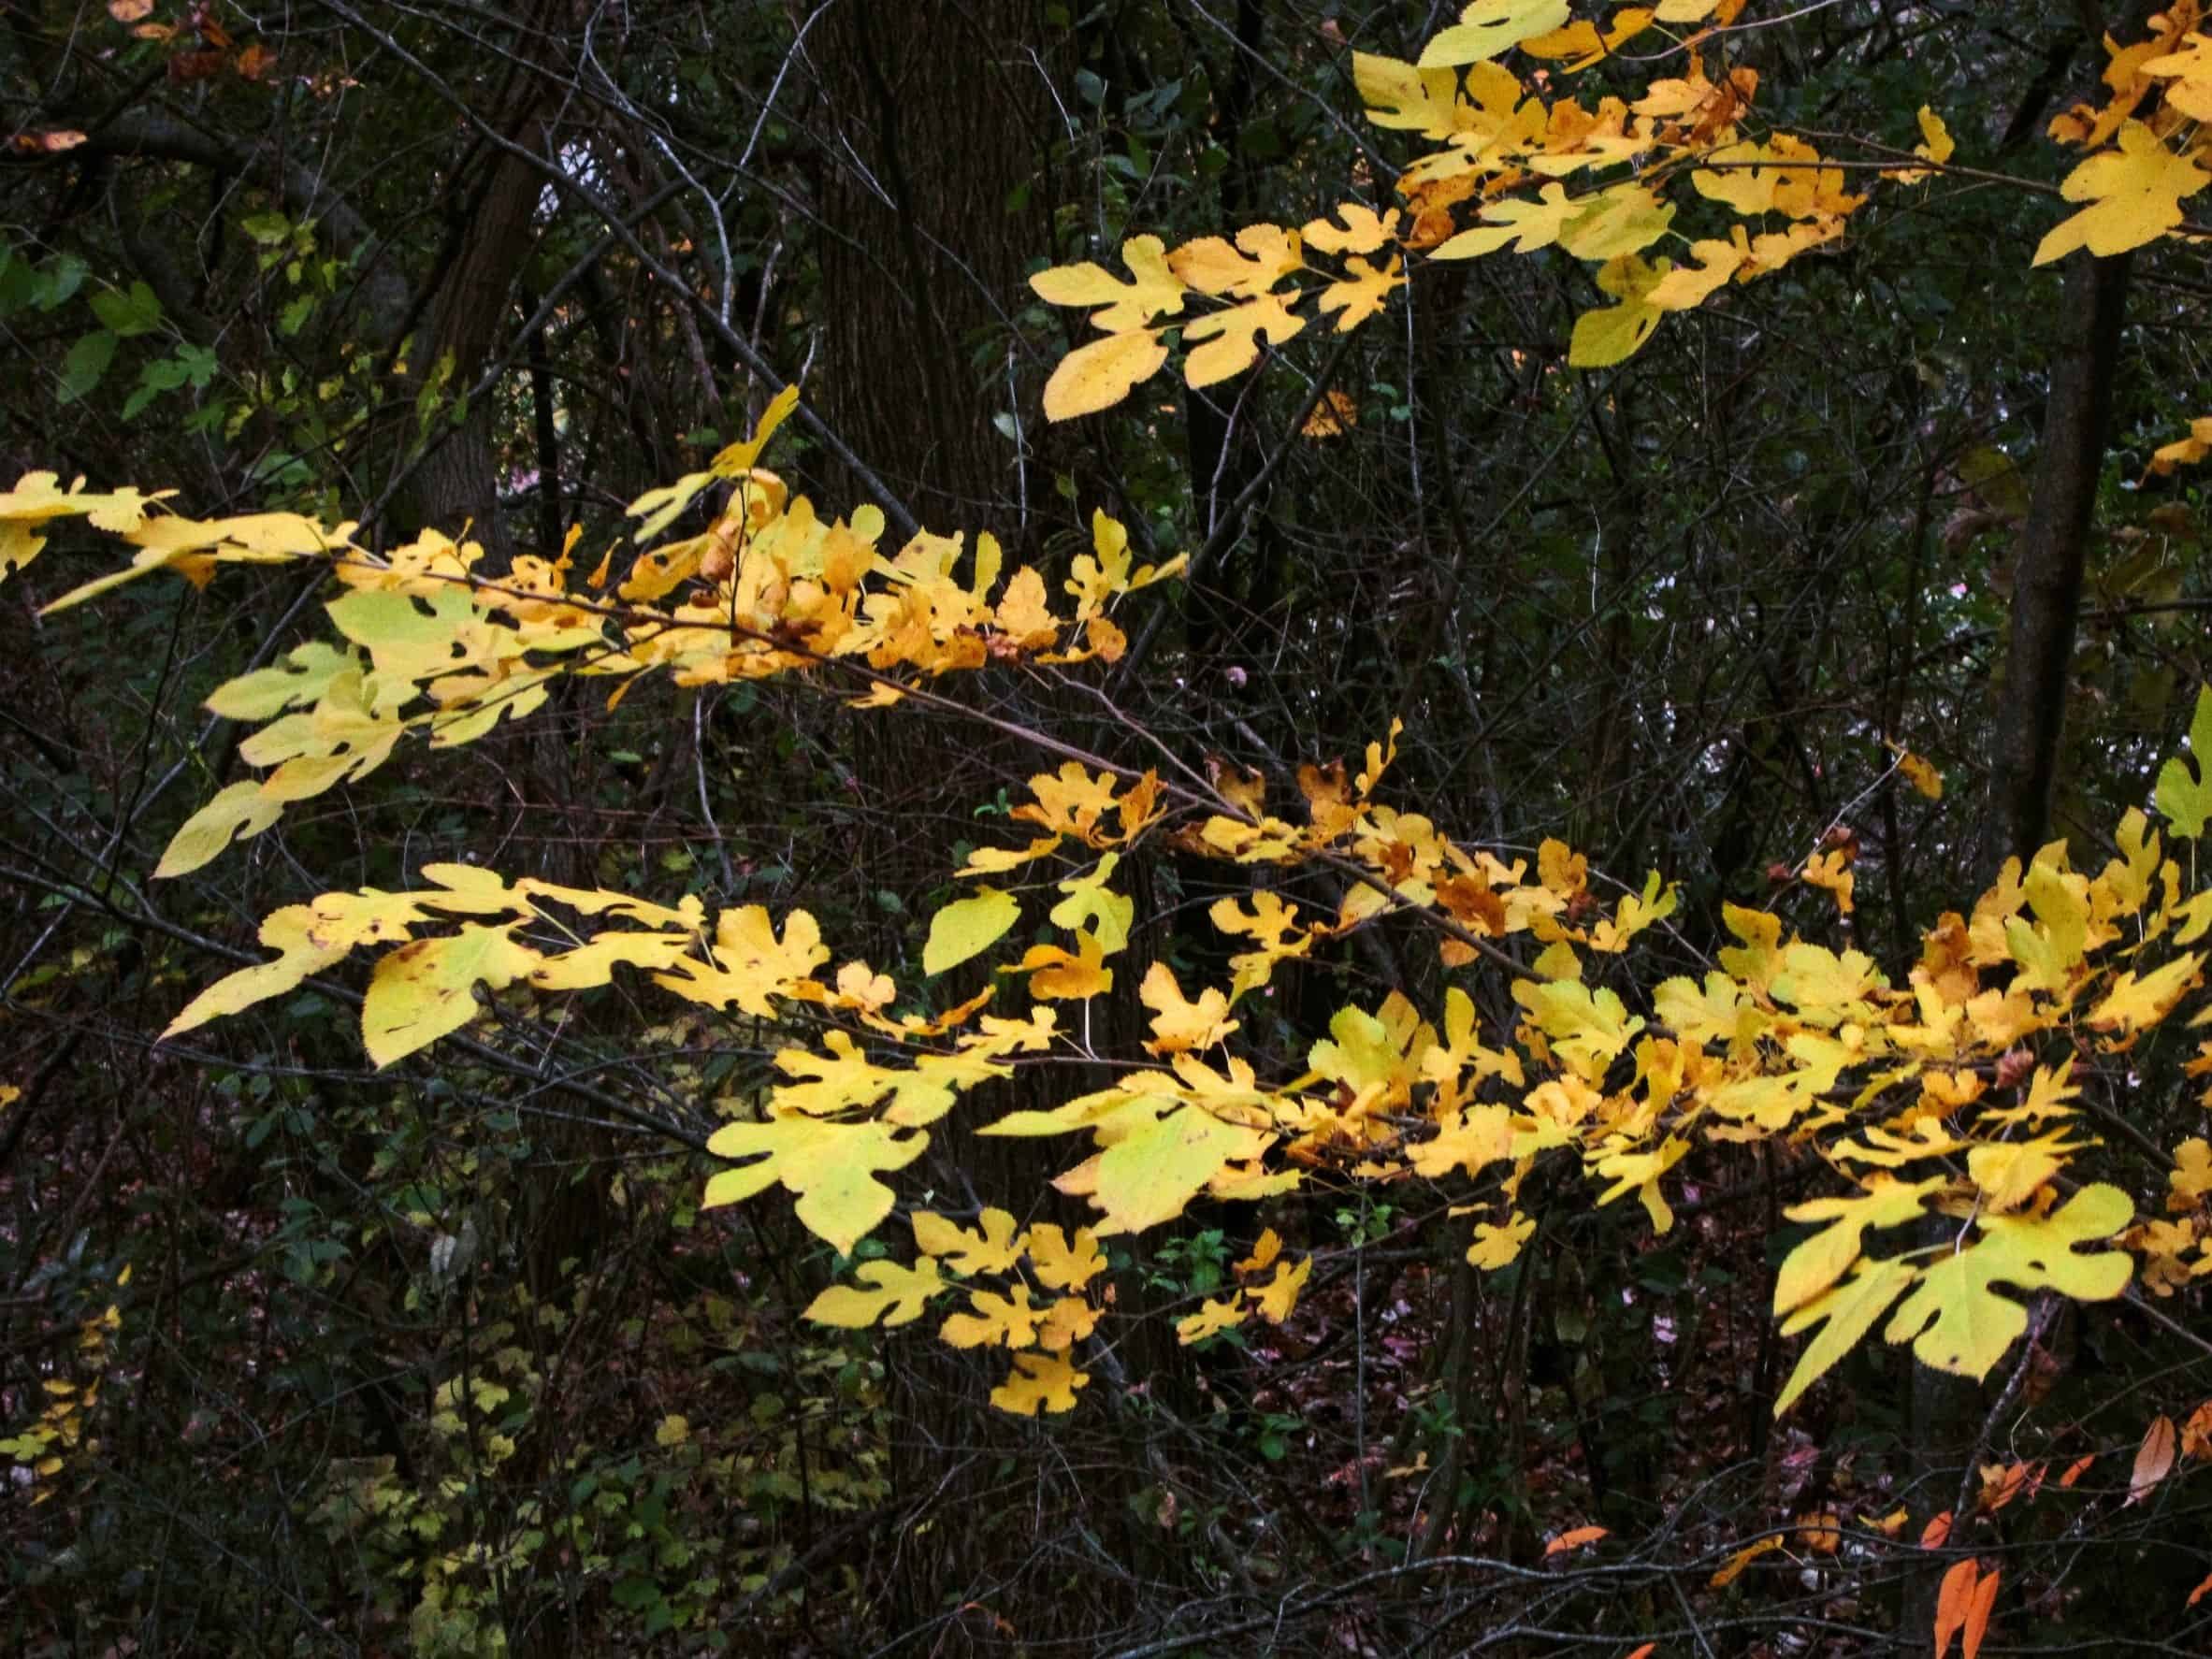 The fall leaves of the sassafras come in a variety of bright colors.